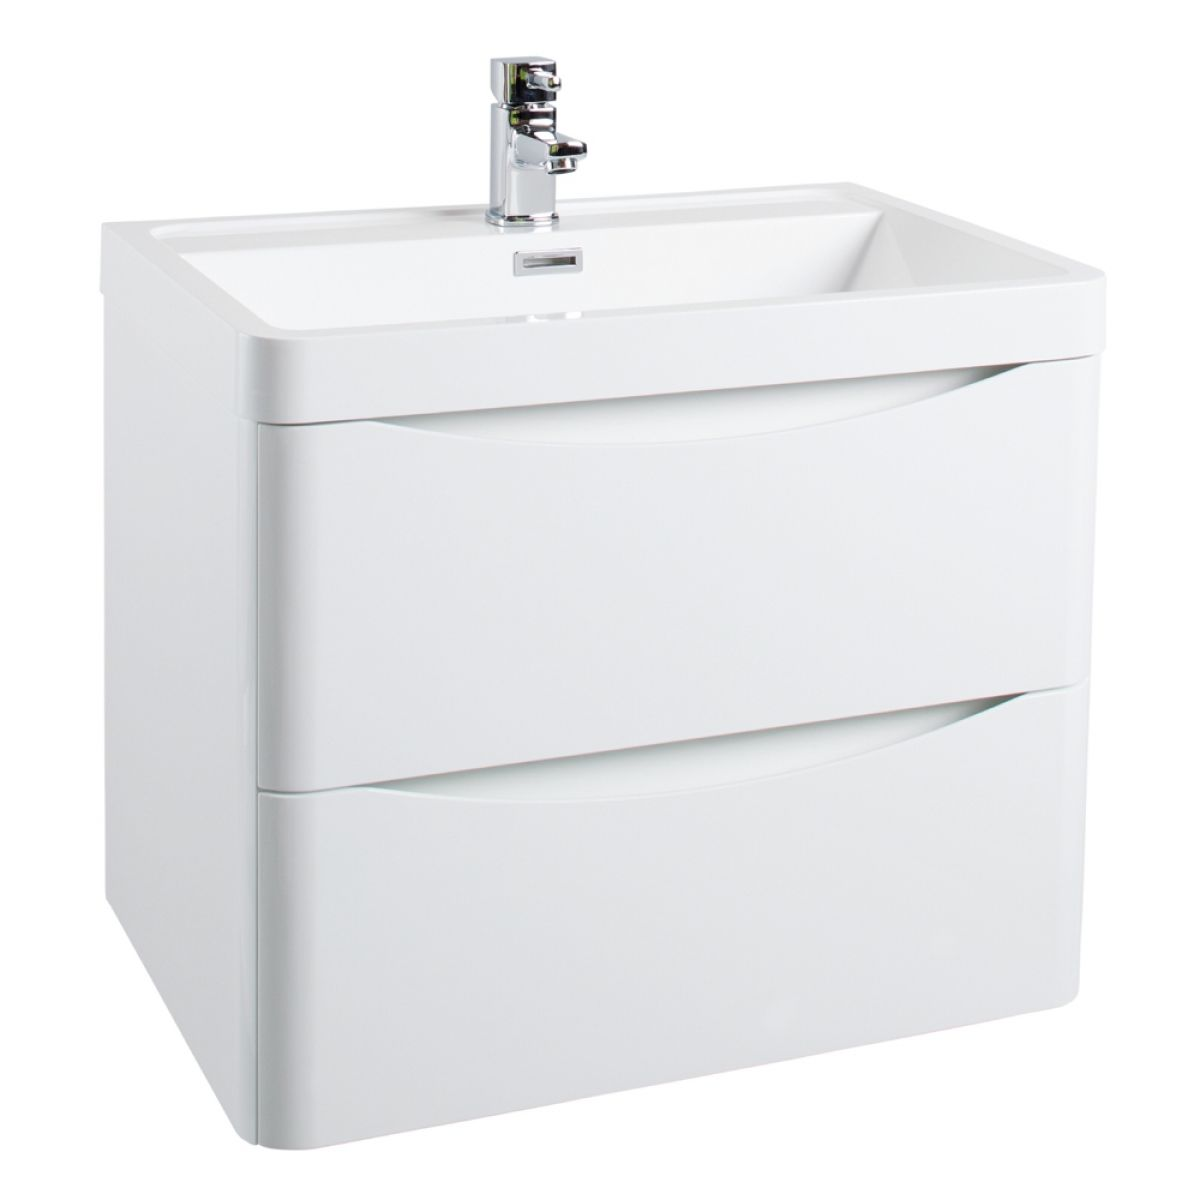 Bali Gloss White Wall Mounted Vanity Unit 600mm